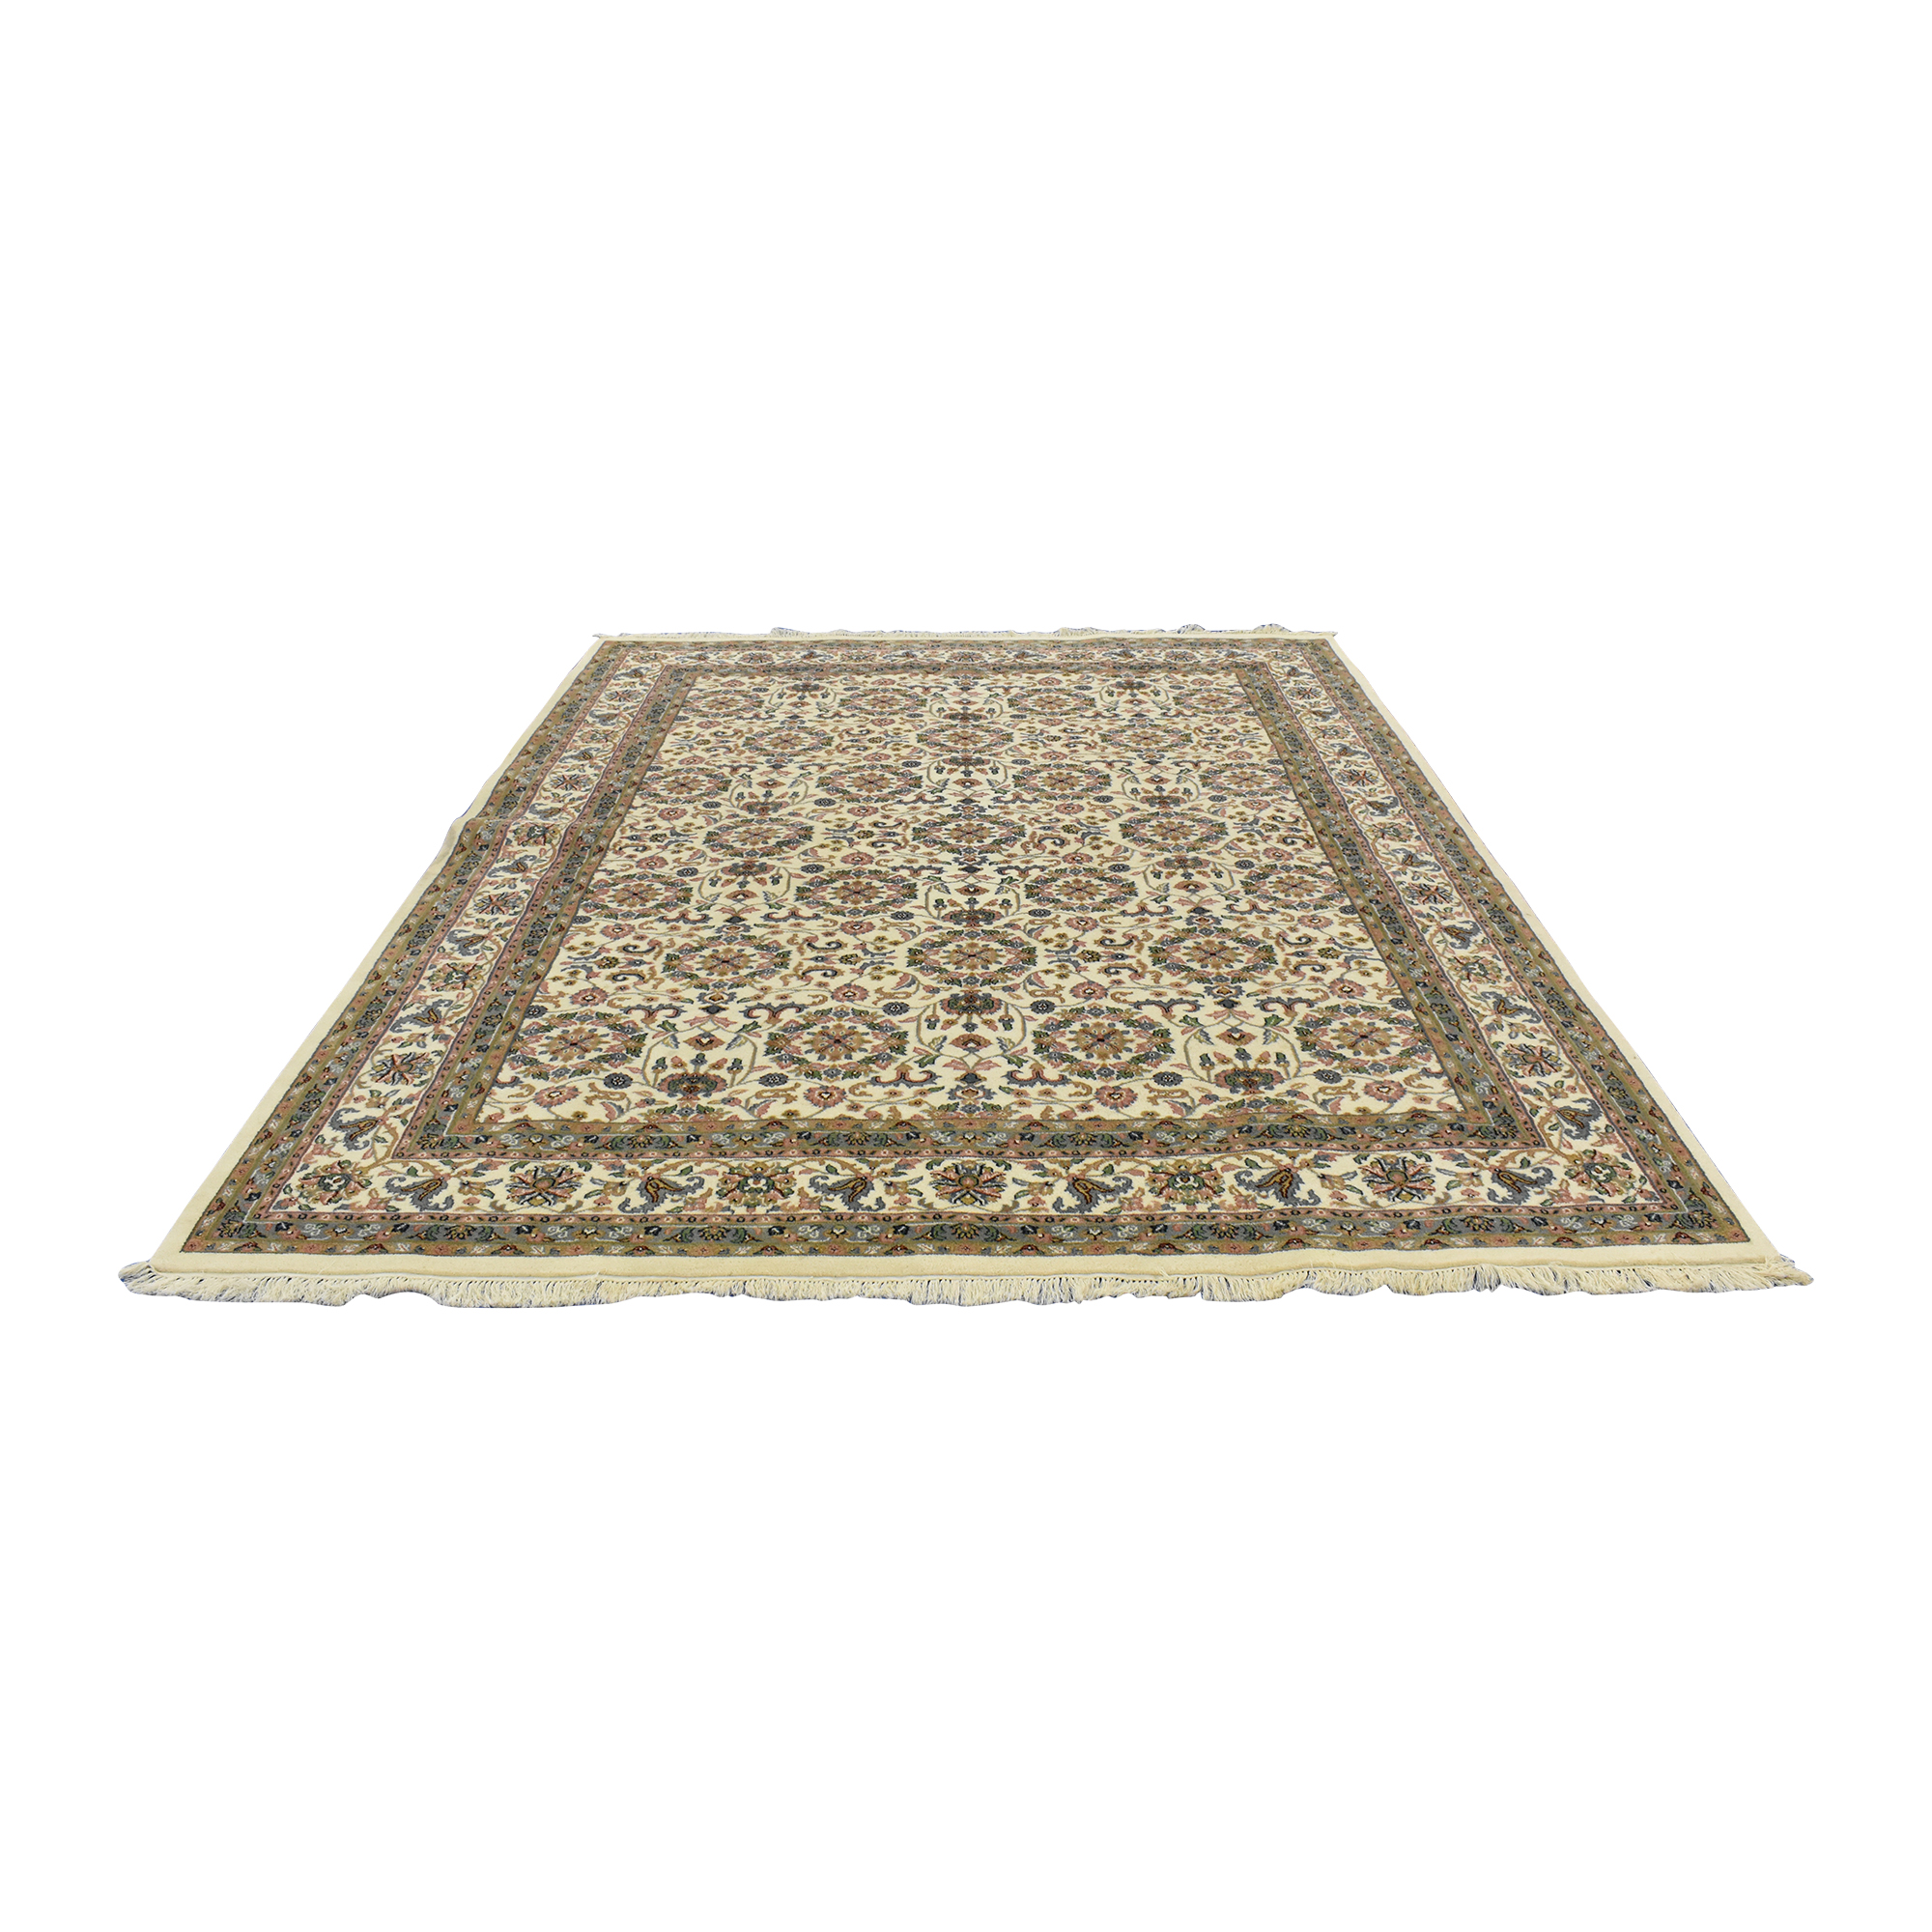 buy  Traditional Patterned Area Rug online